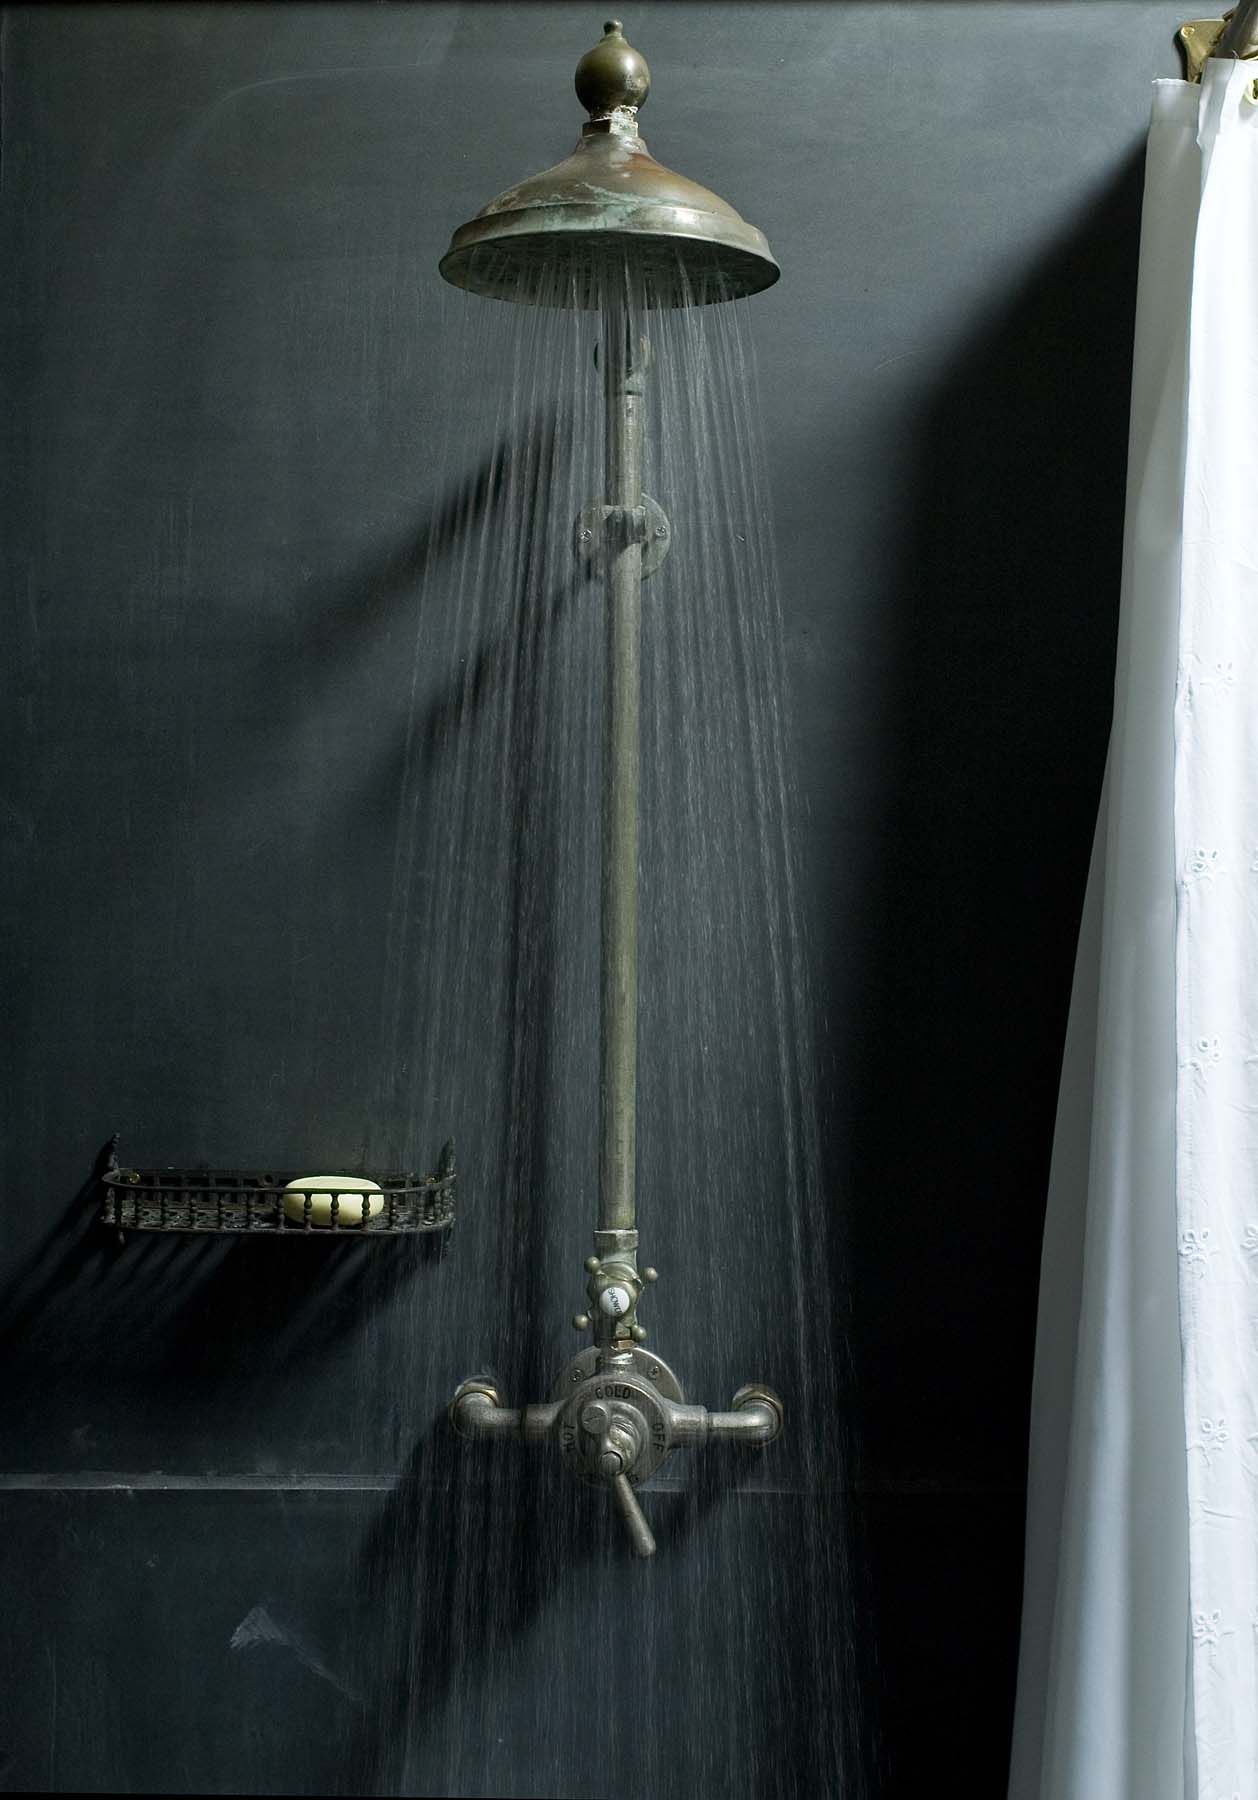 ♥§• I met a Manhattan, NYC shower that looked very much like this ...